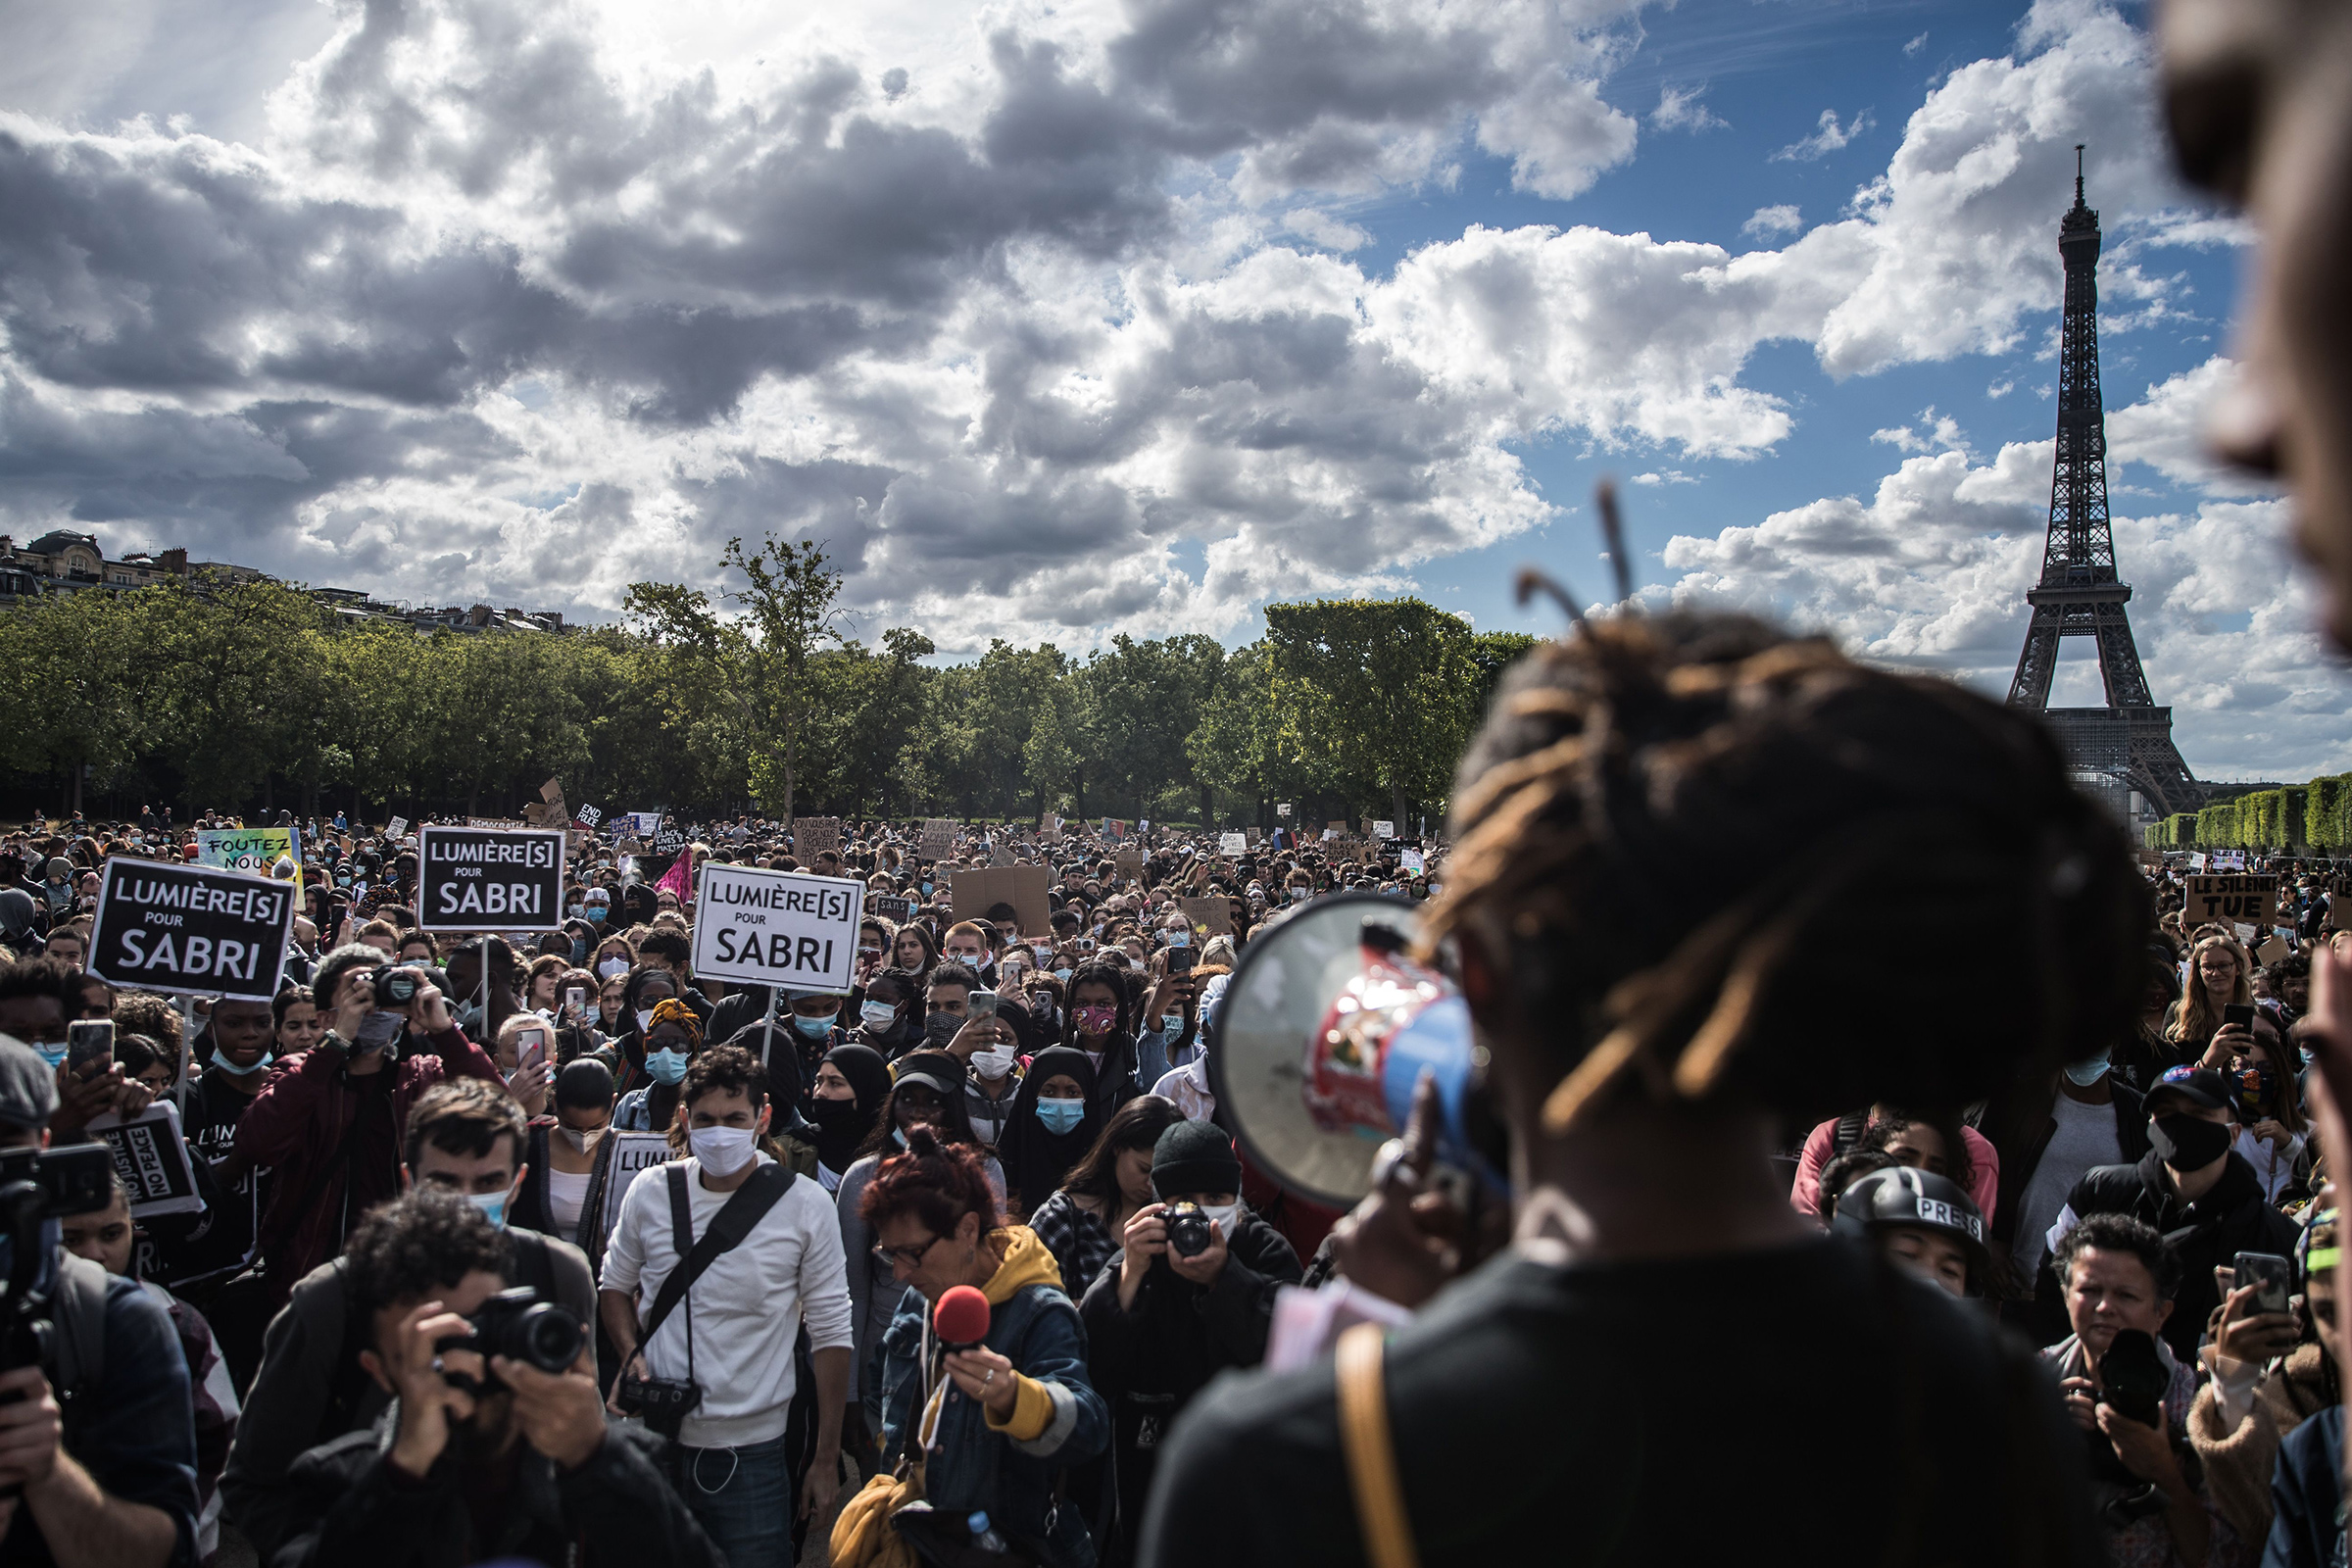 Protesters in Paris speak out on June 6 against police brutality in the U.S. and France